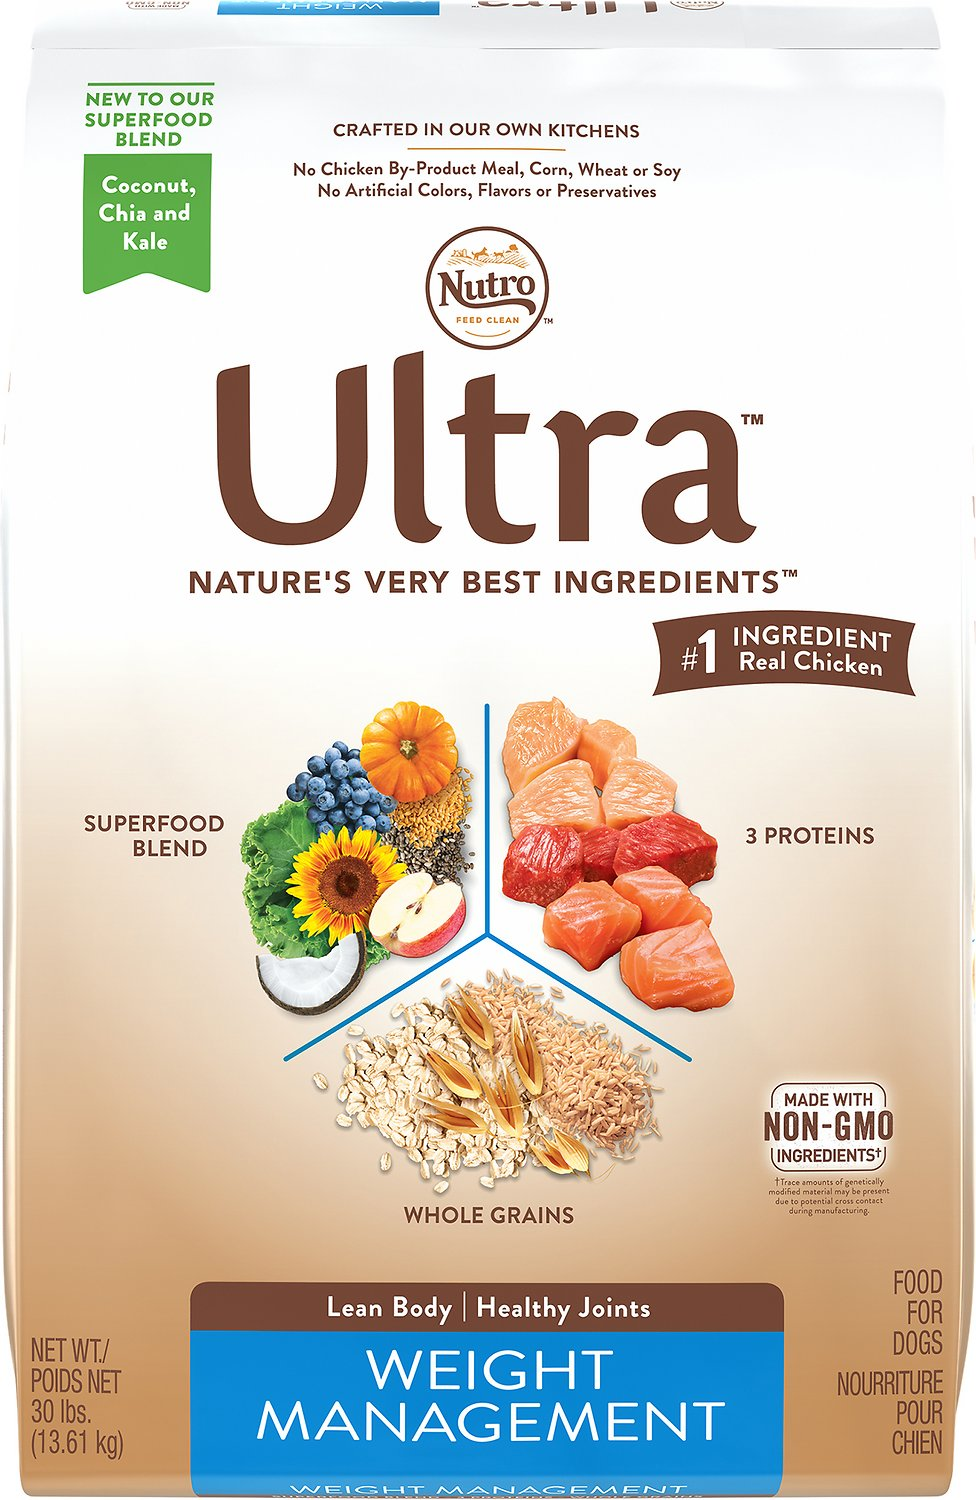 Nutro Ultra Weight Management Dry Dog Food Image